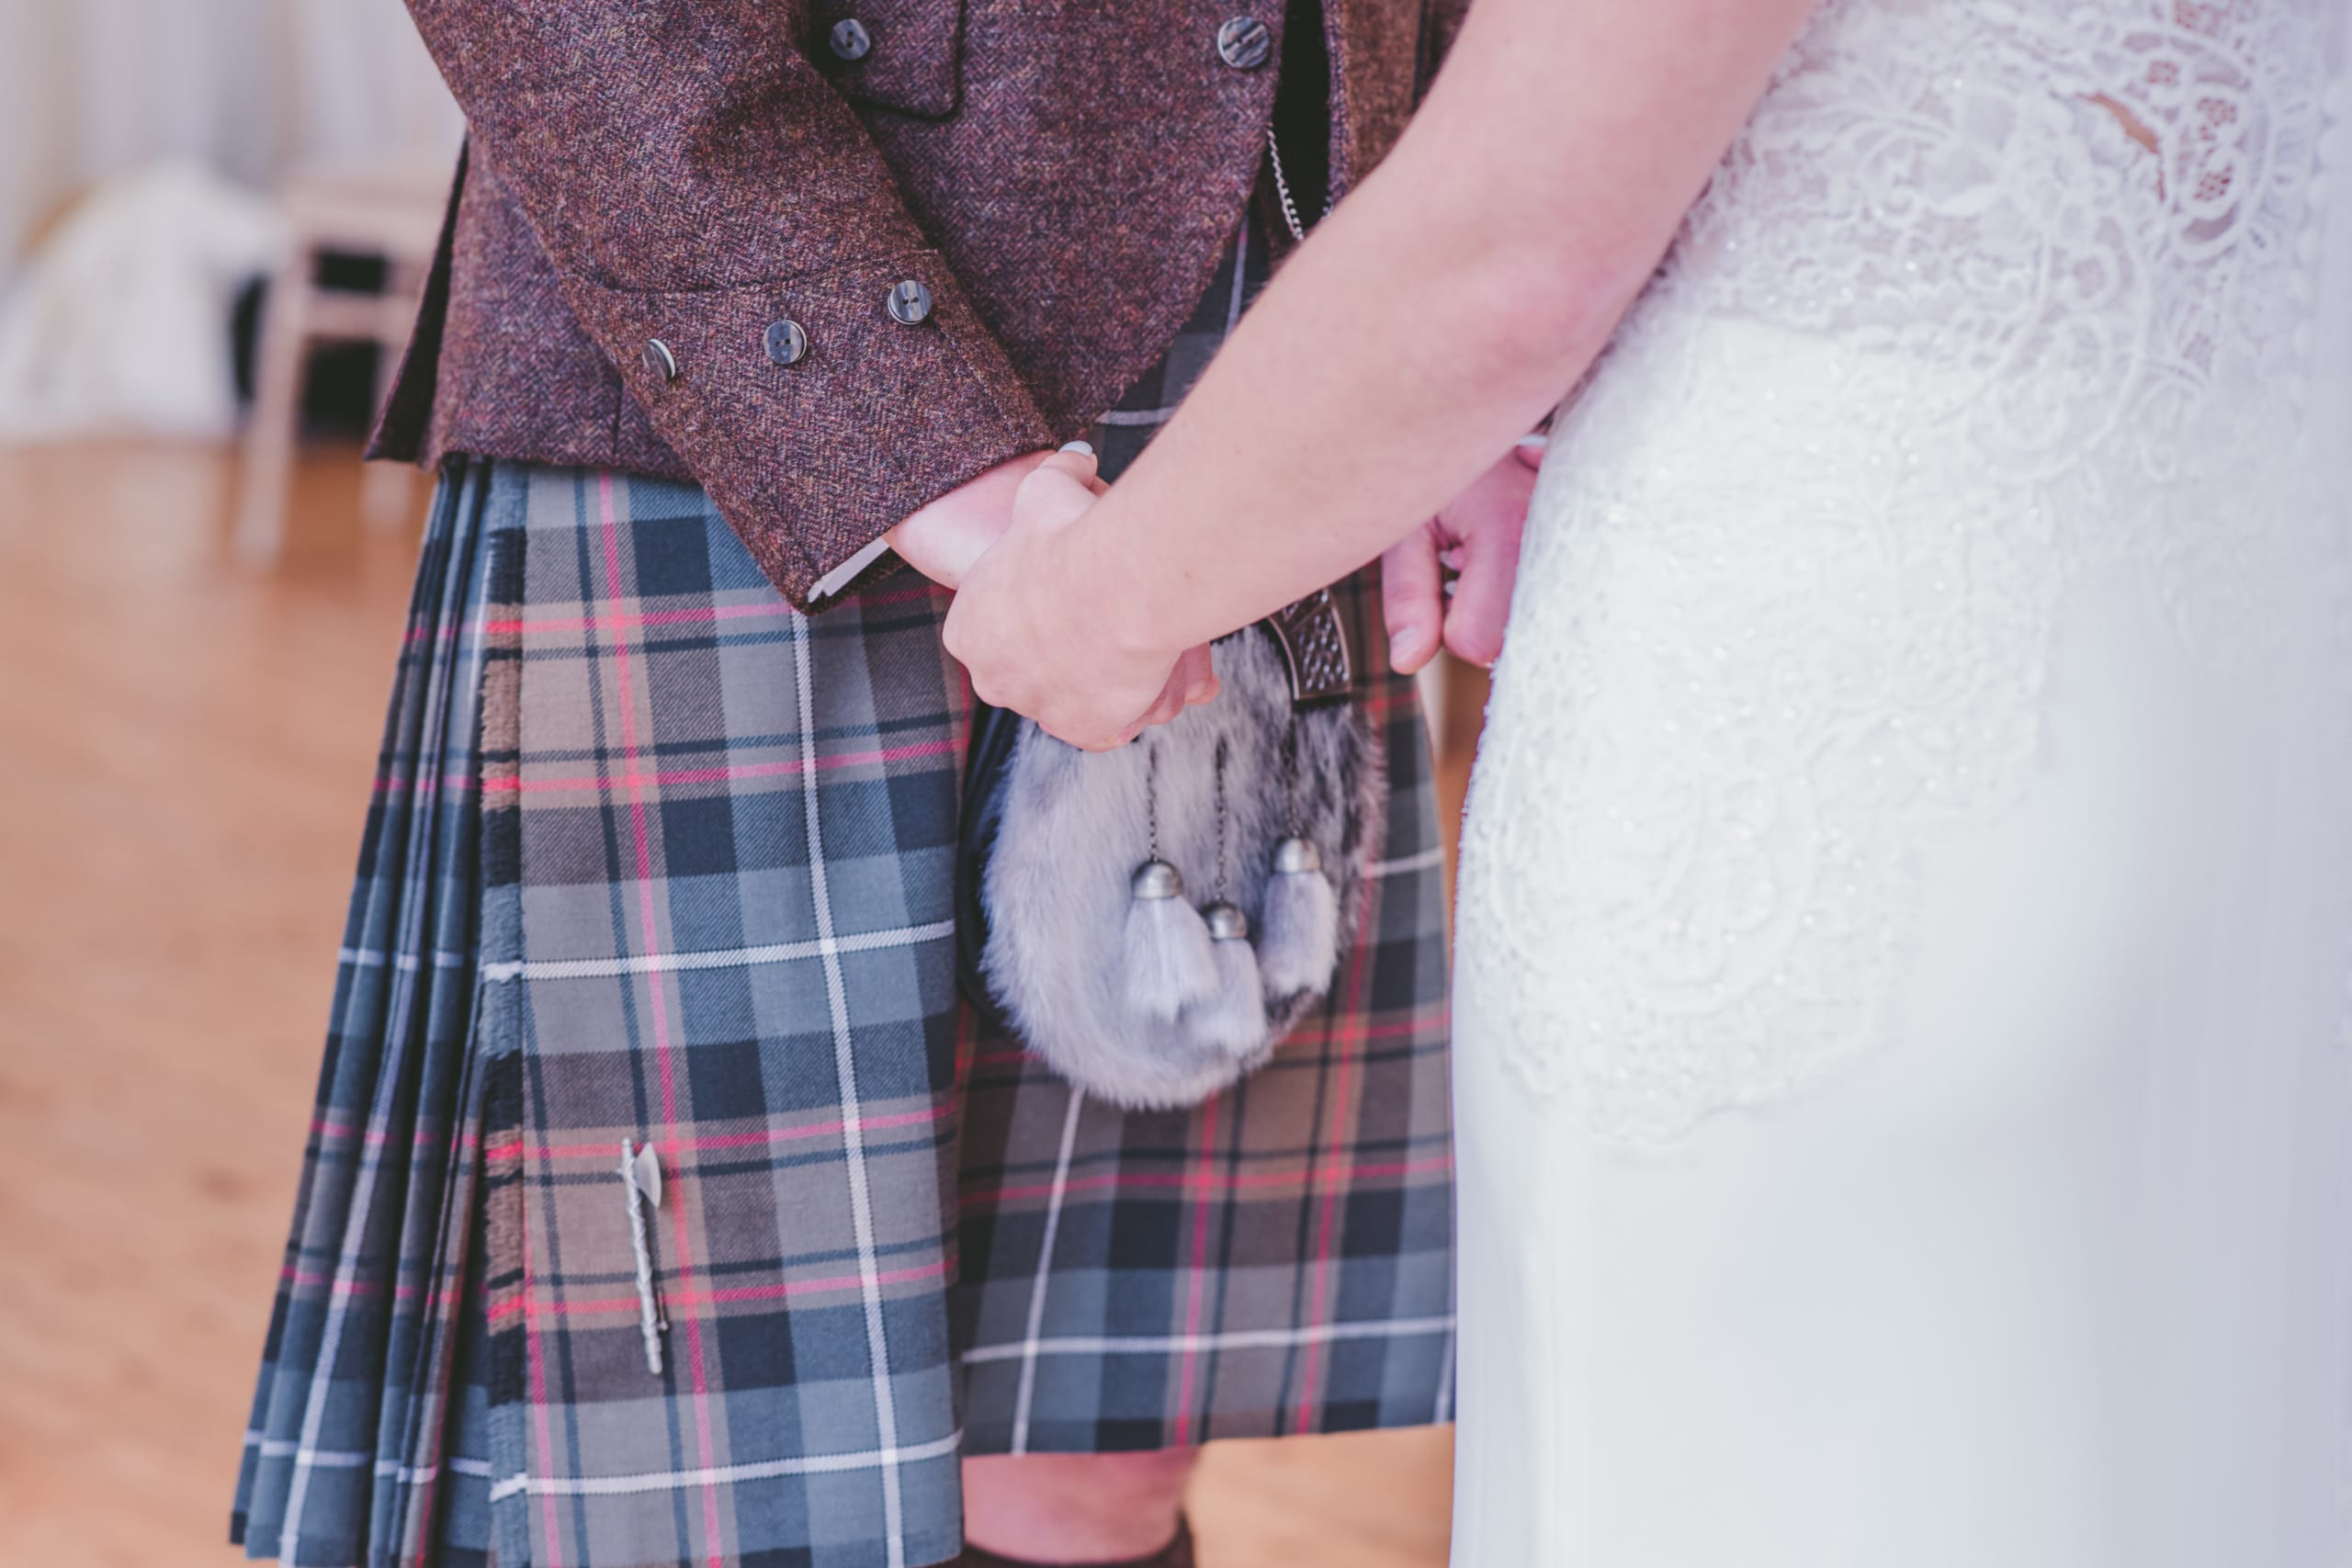 Wedding Kilts 101